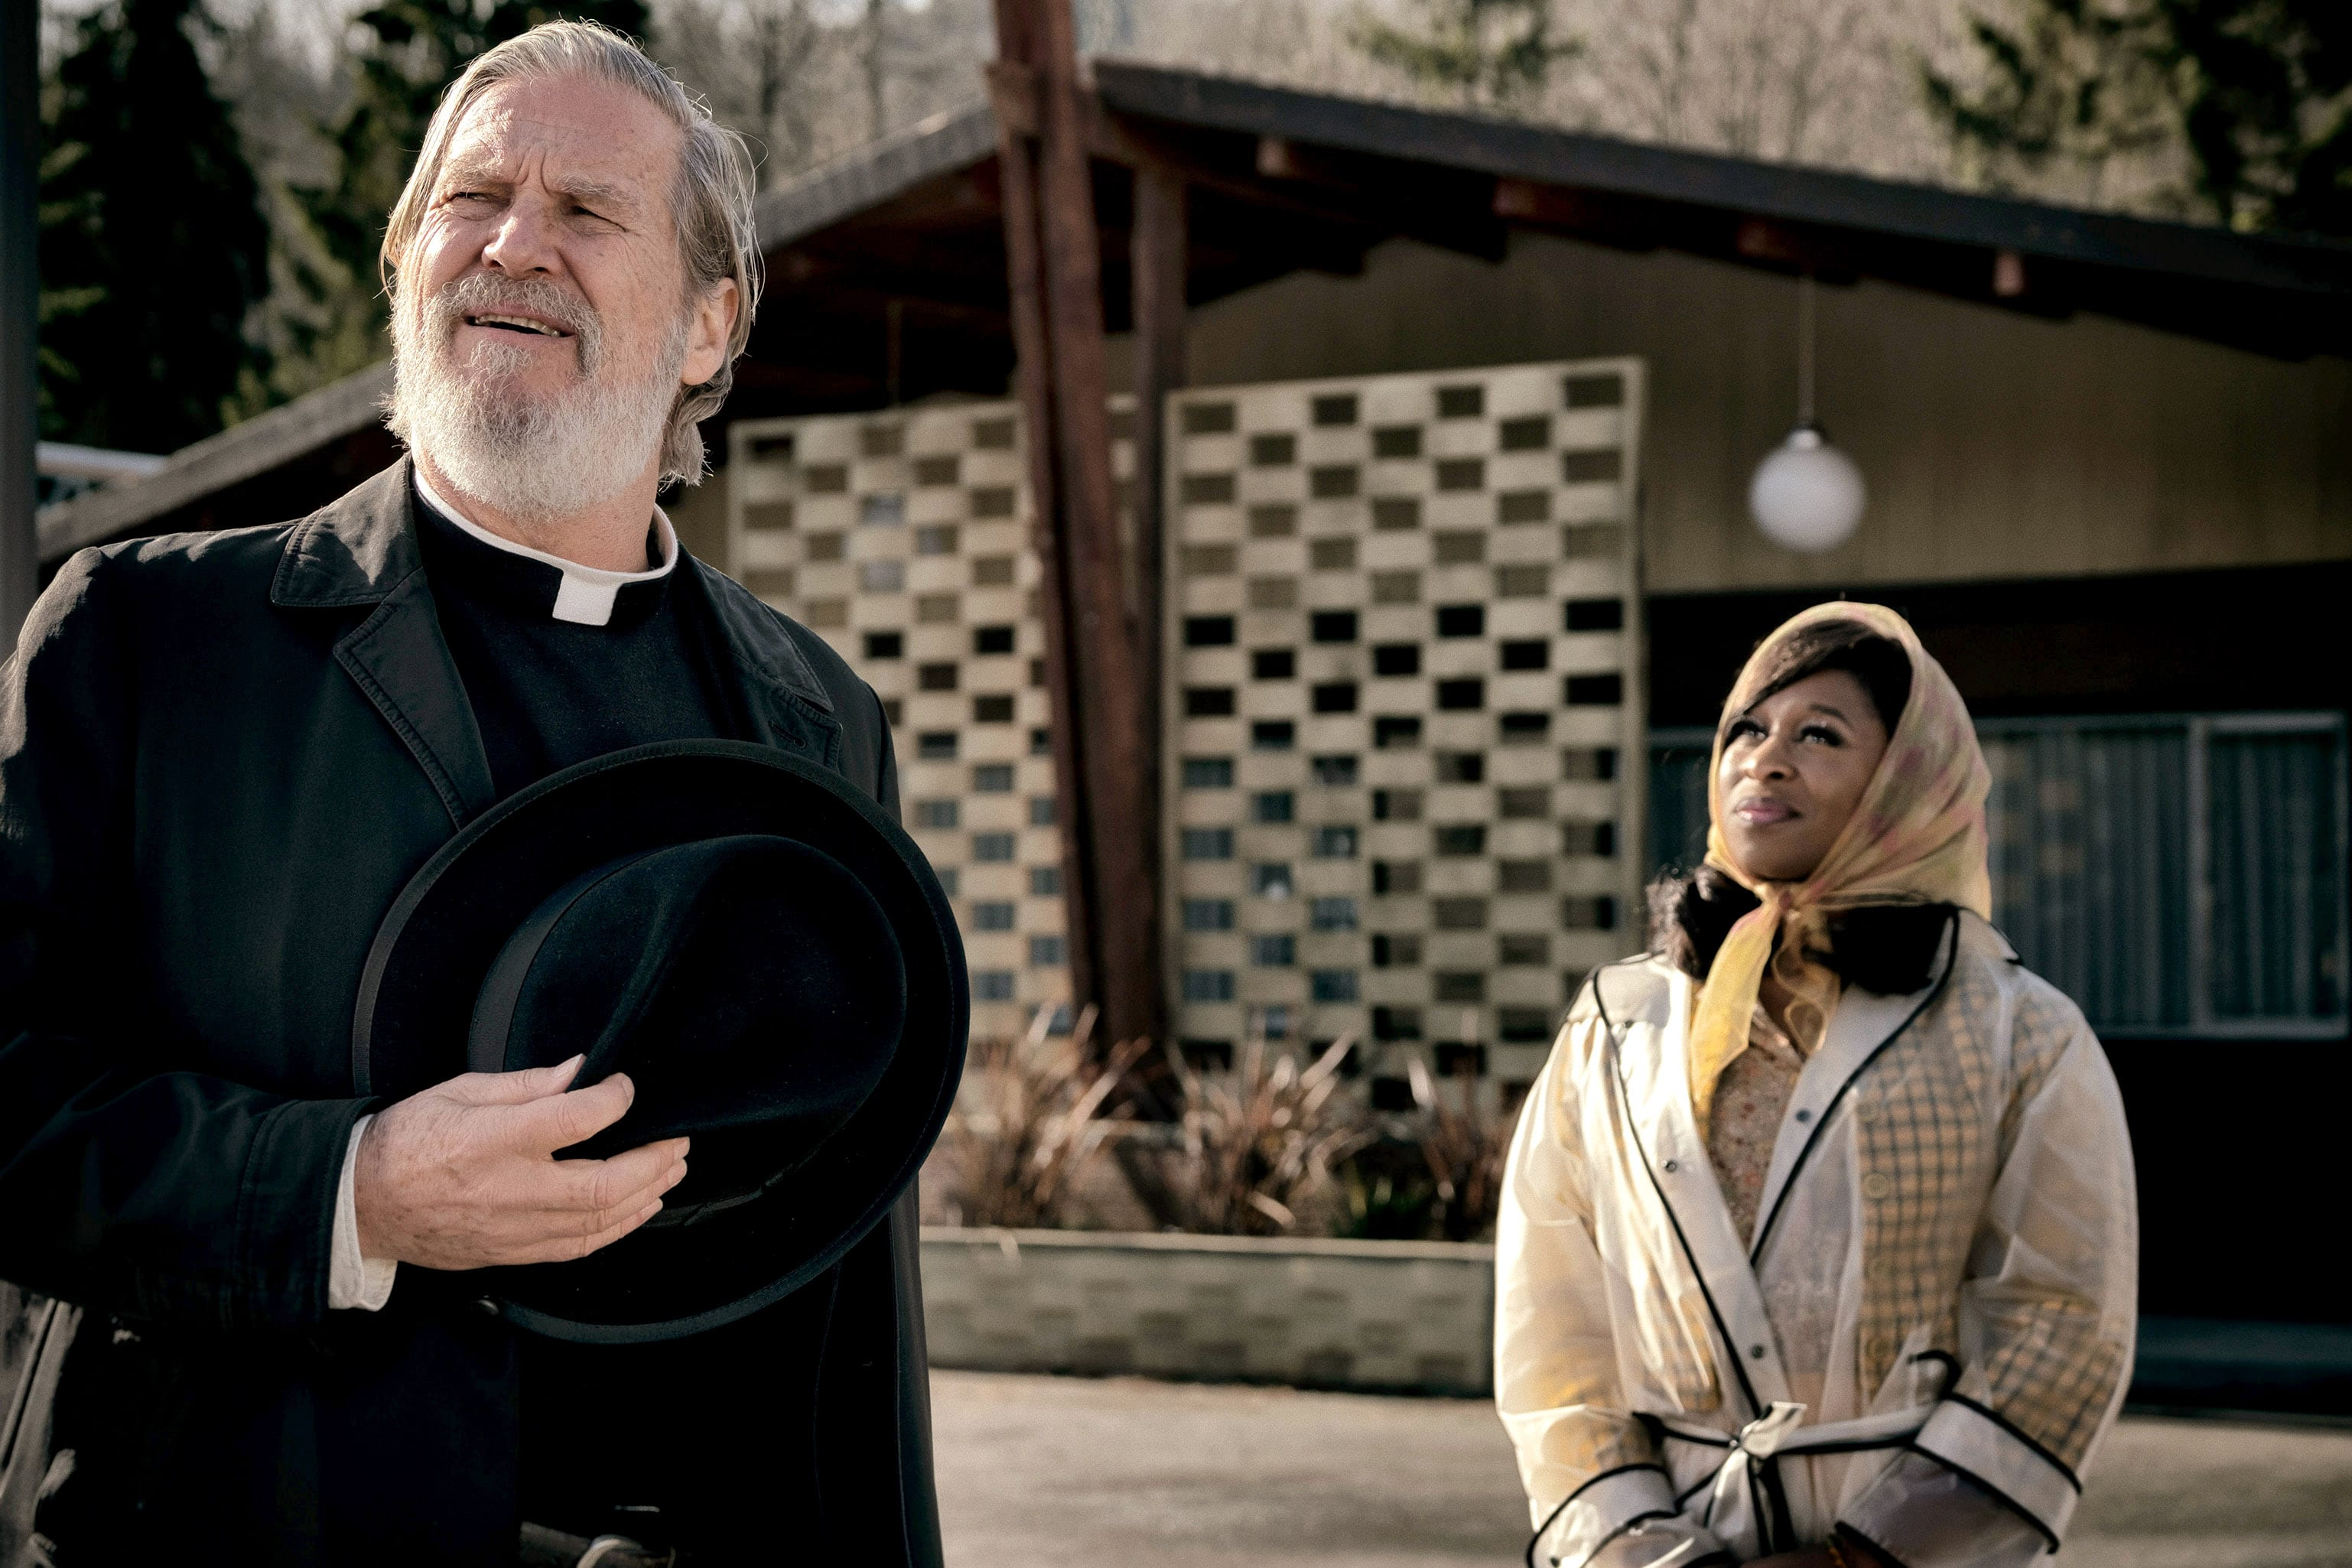 Jeff Bridges and Cynthia Erivo star in a scene from the movie